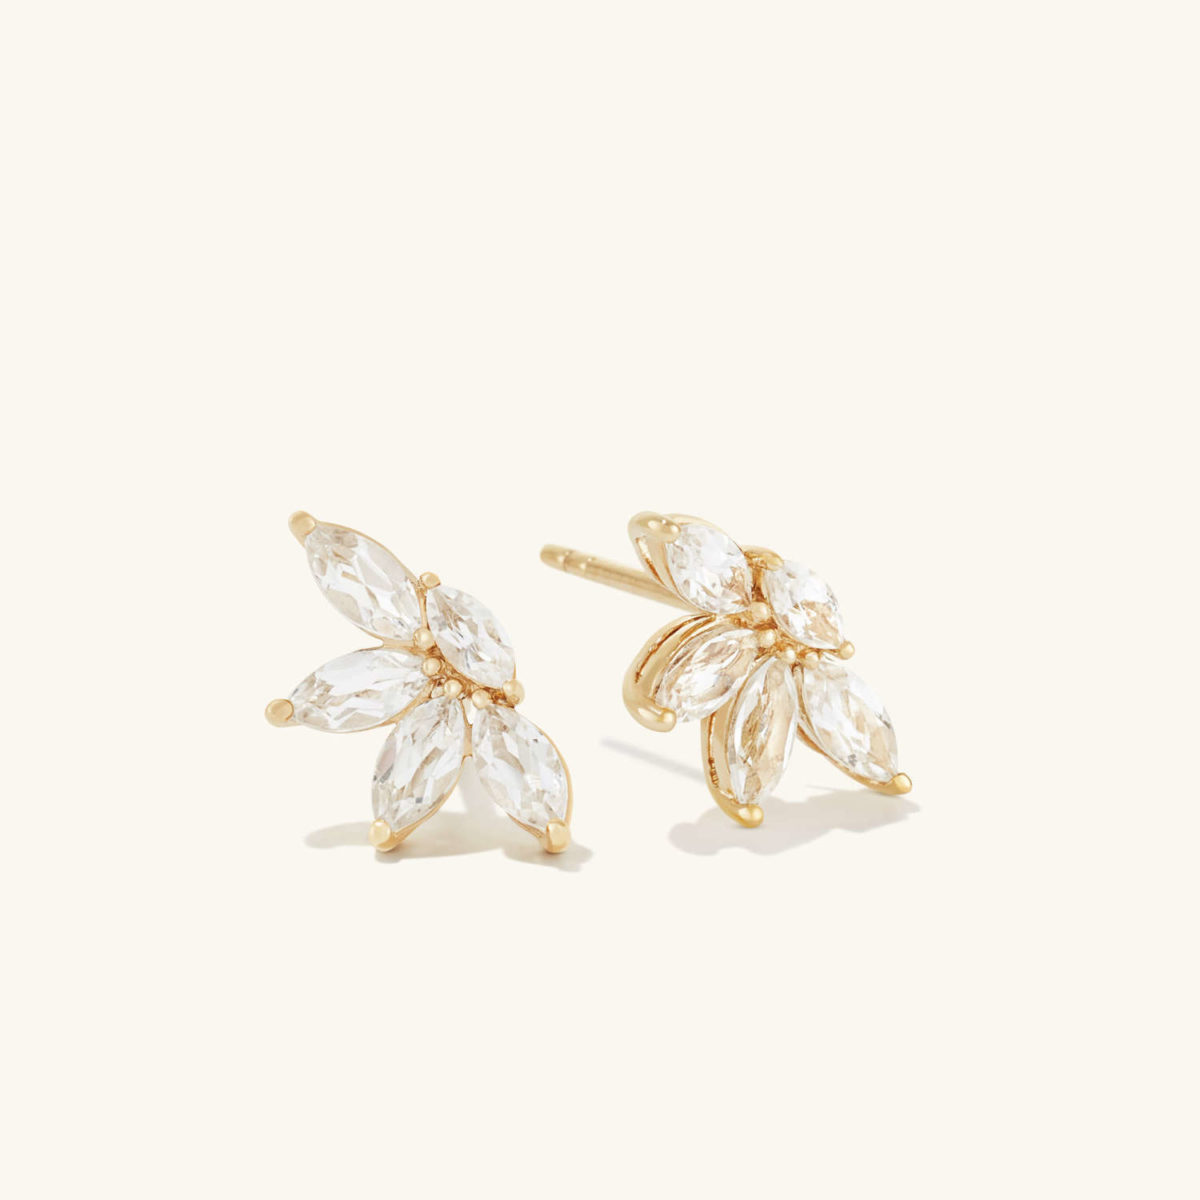 here's my best kept secret and 17 great gifts from mejuri, the best quality and affordable jewelry brand